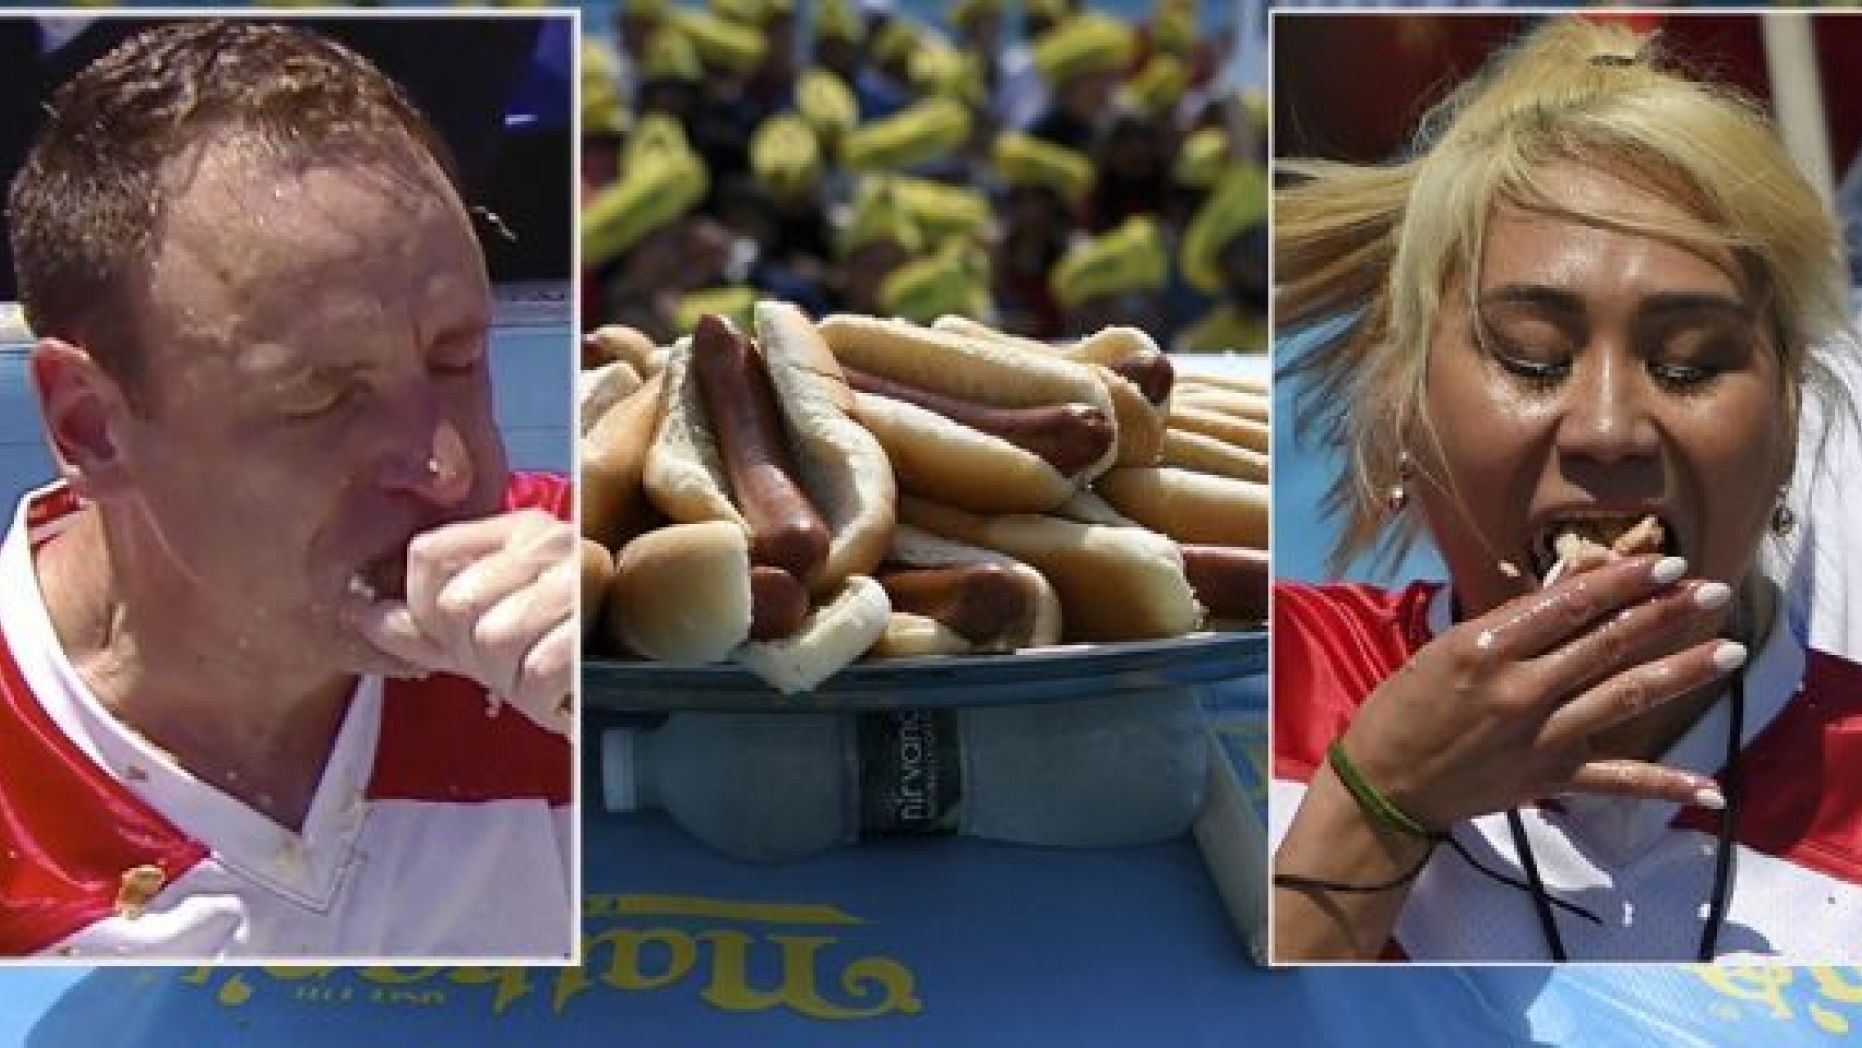 Hot dogs are displayed before the annual Nathan